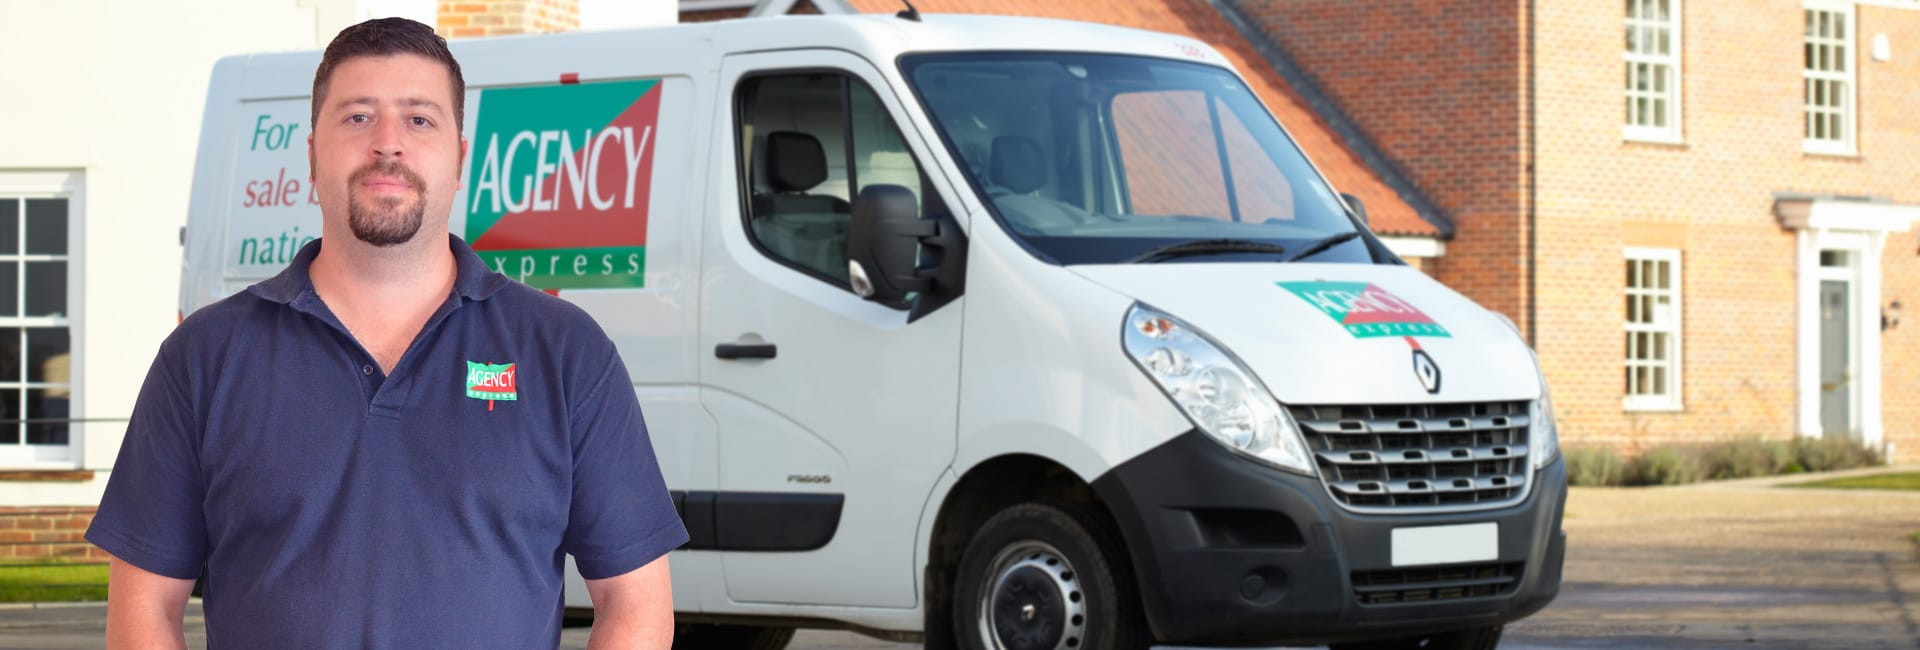 Agency Express franchise case study. Franchisee Alex Sunjich with van.